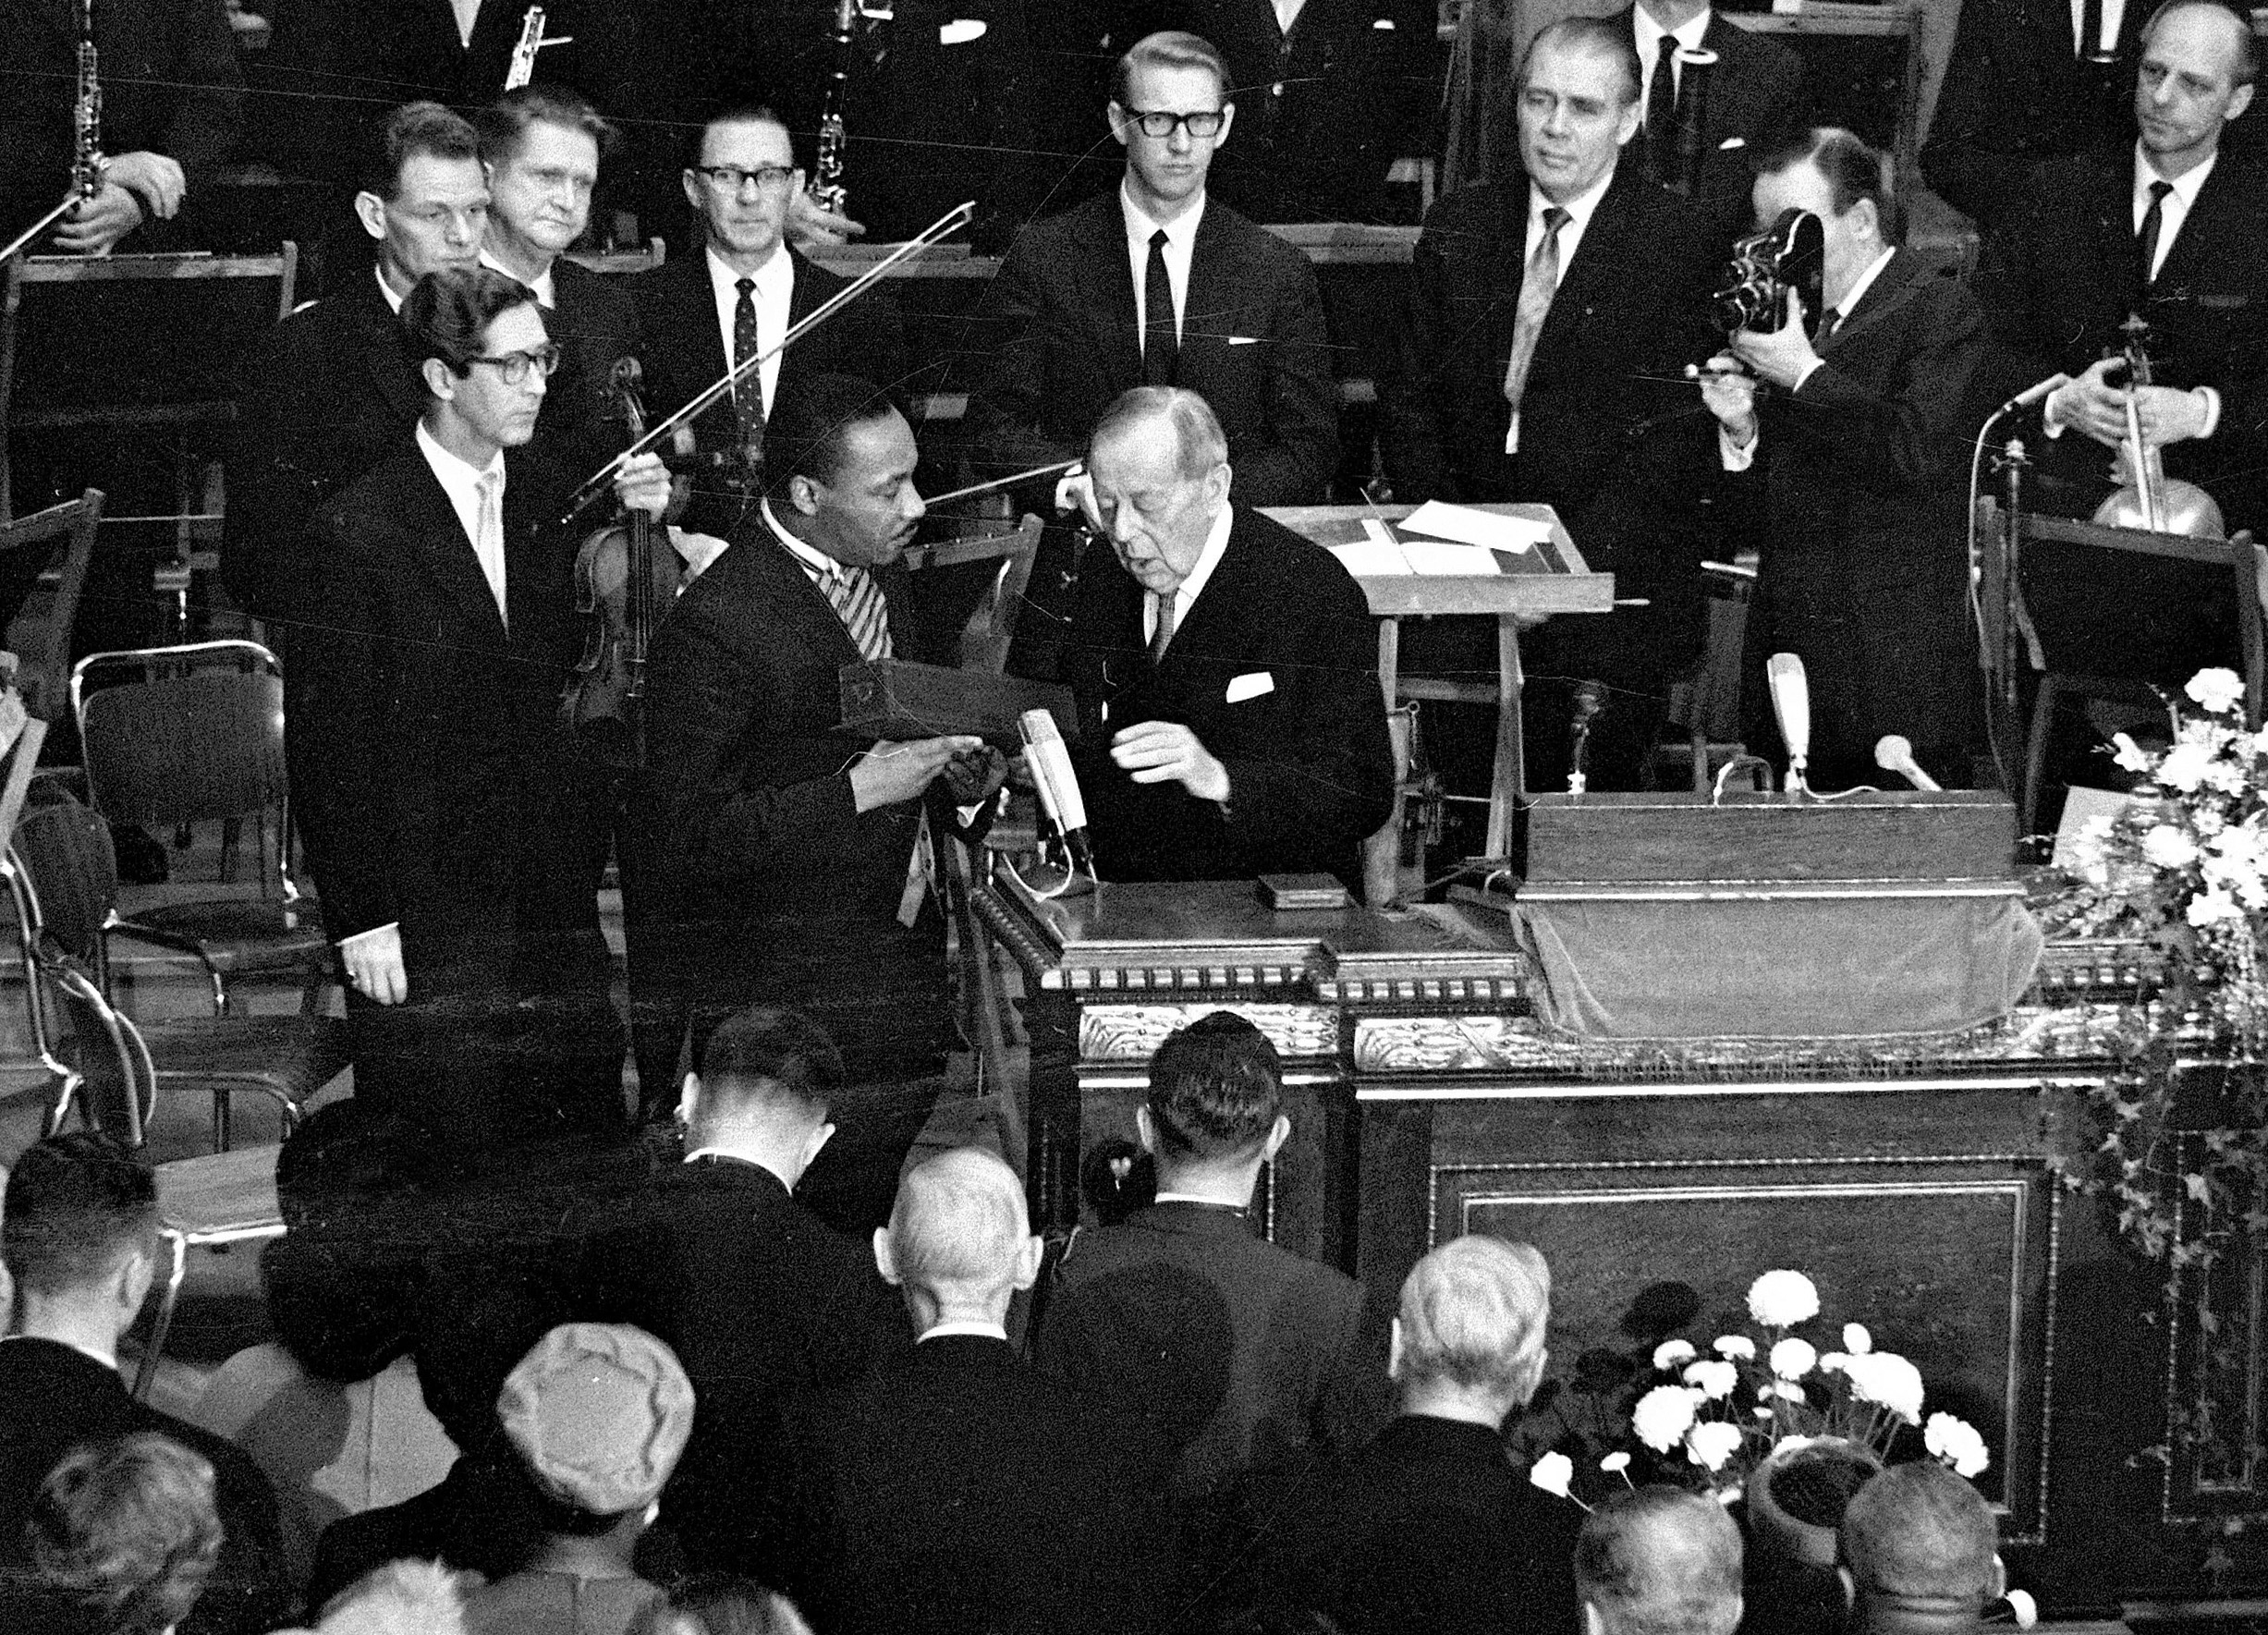 U.S. civil rights leader Rev. Dr. Martin Luther King receives the Nobel Peace Prize from Gunnar Jahn, chairman of the Nobel Committee, in Oslo, on Dec. 10, 1964.